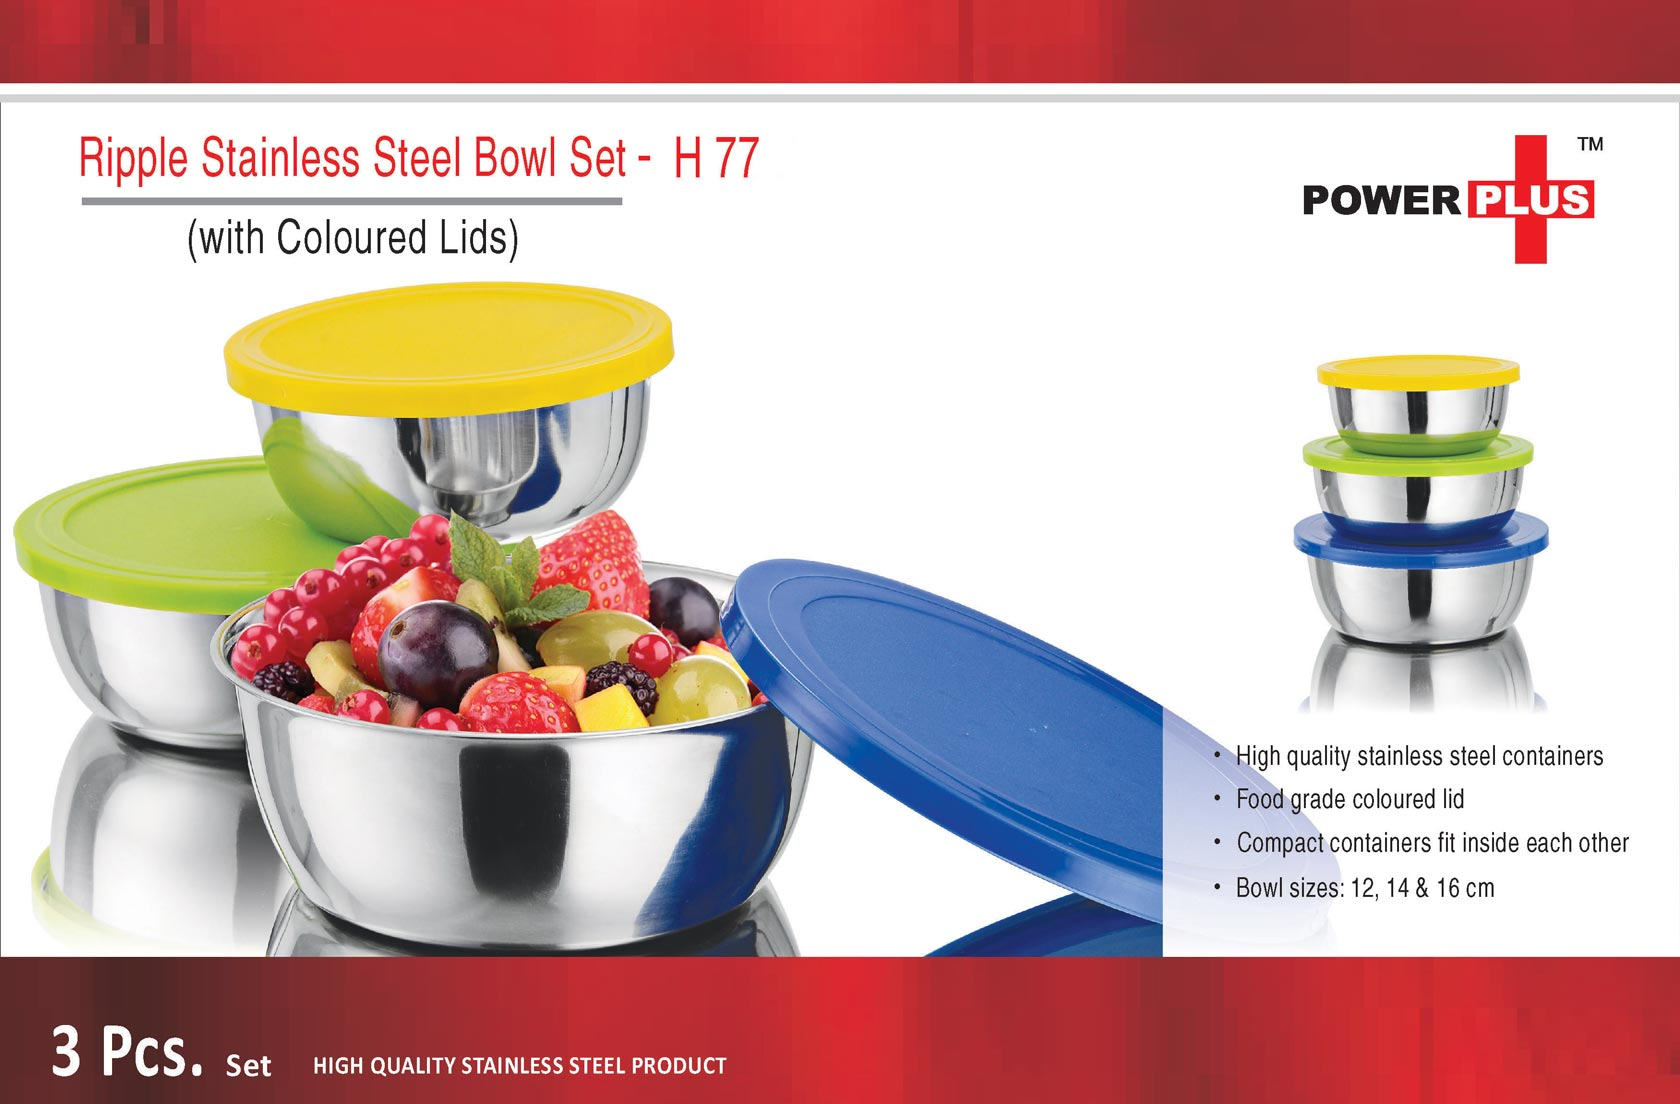 H77 - Power Plus Ripple Stainless Steel Bowl Set (Set of 3) (with coloured Lids)